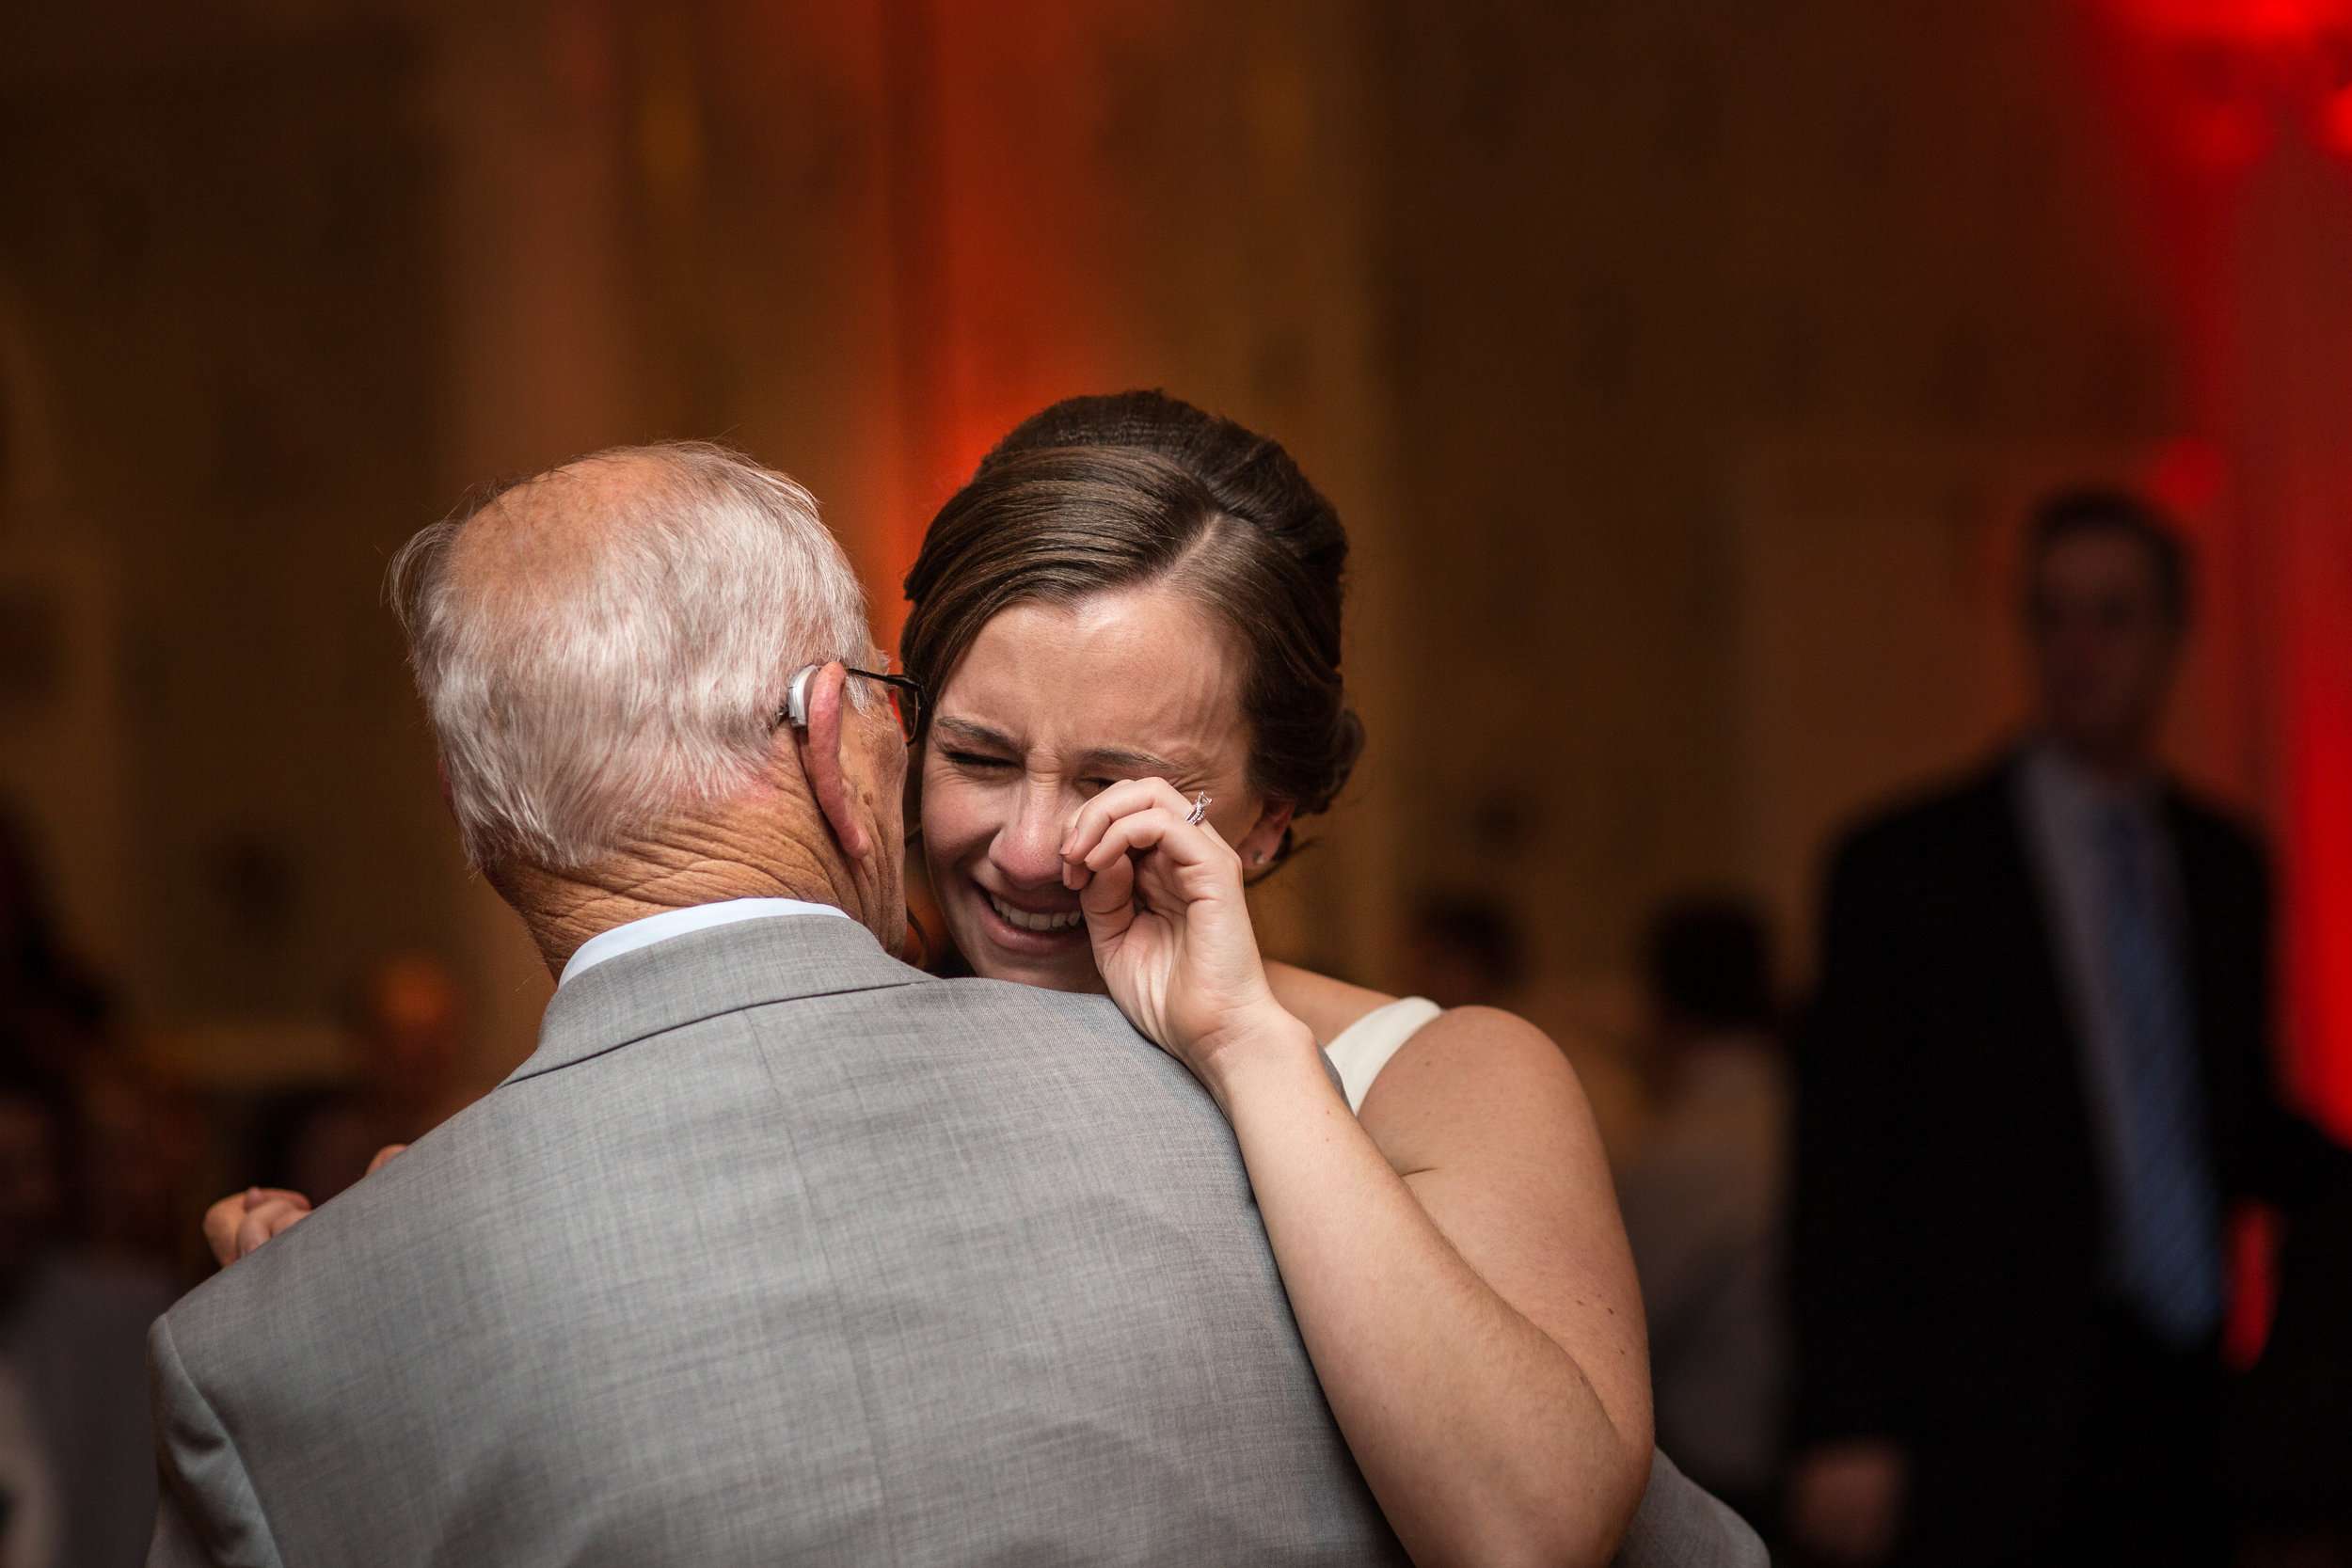 emotional photo of the bride and her grandfather